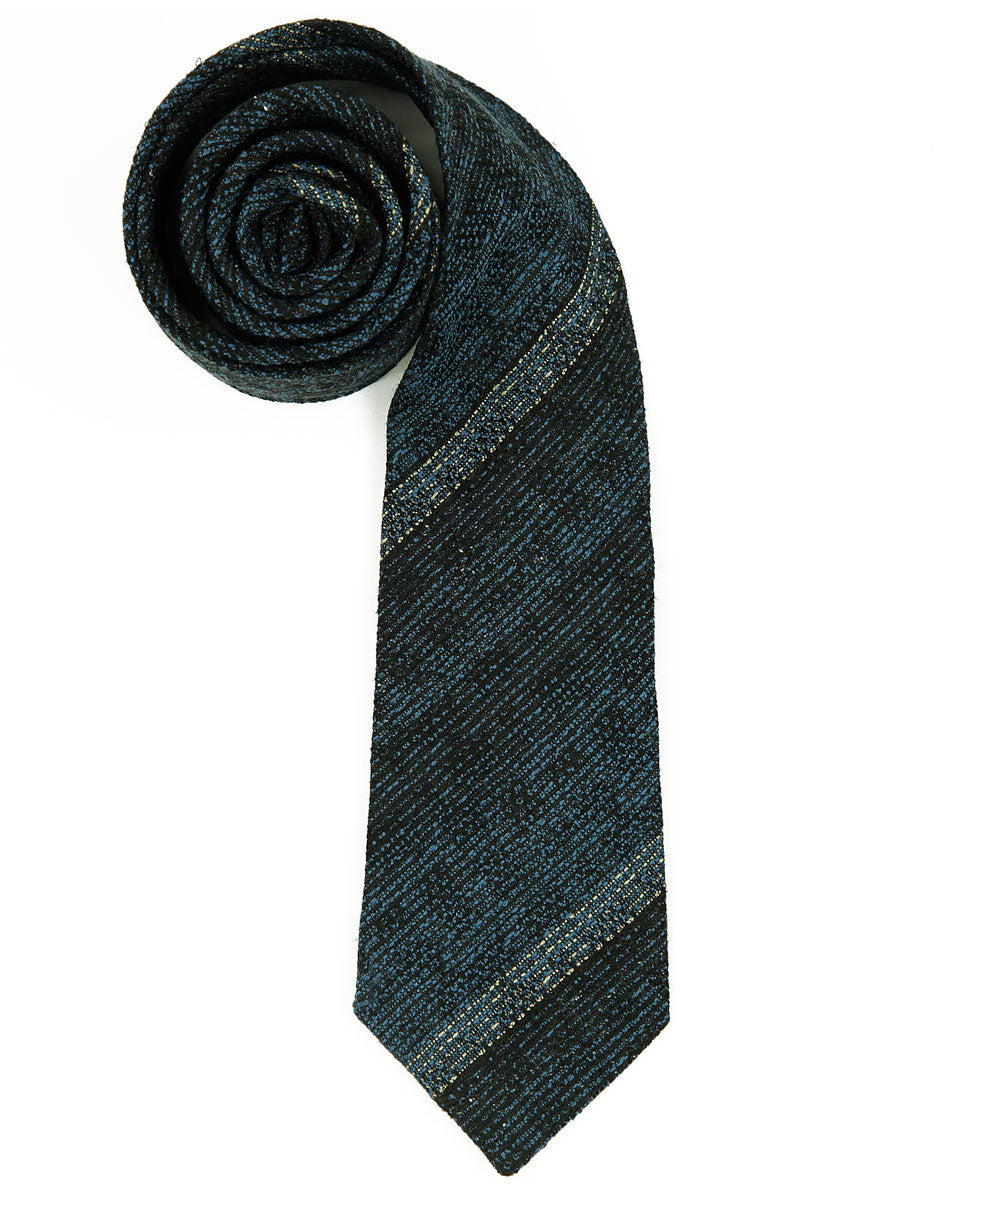 The Hester Necktie